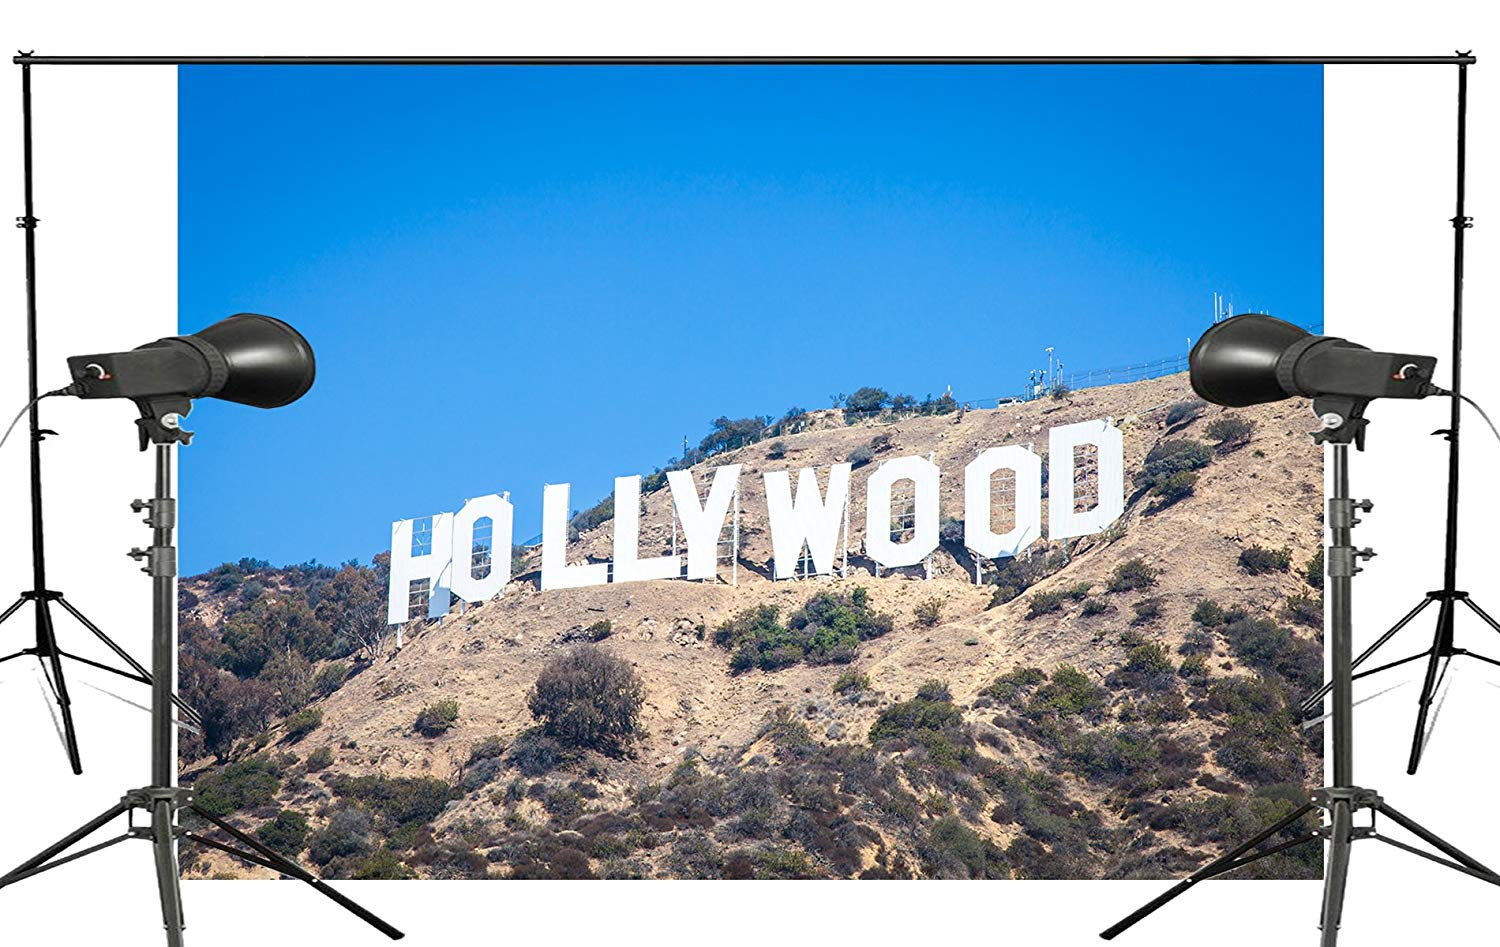 7x5ft Classic Hollywood Base Photography Background landscape Backdrop Photo Studio Holiday background-in Photo Studio Accessories from Consumer Electronics